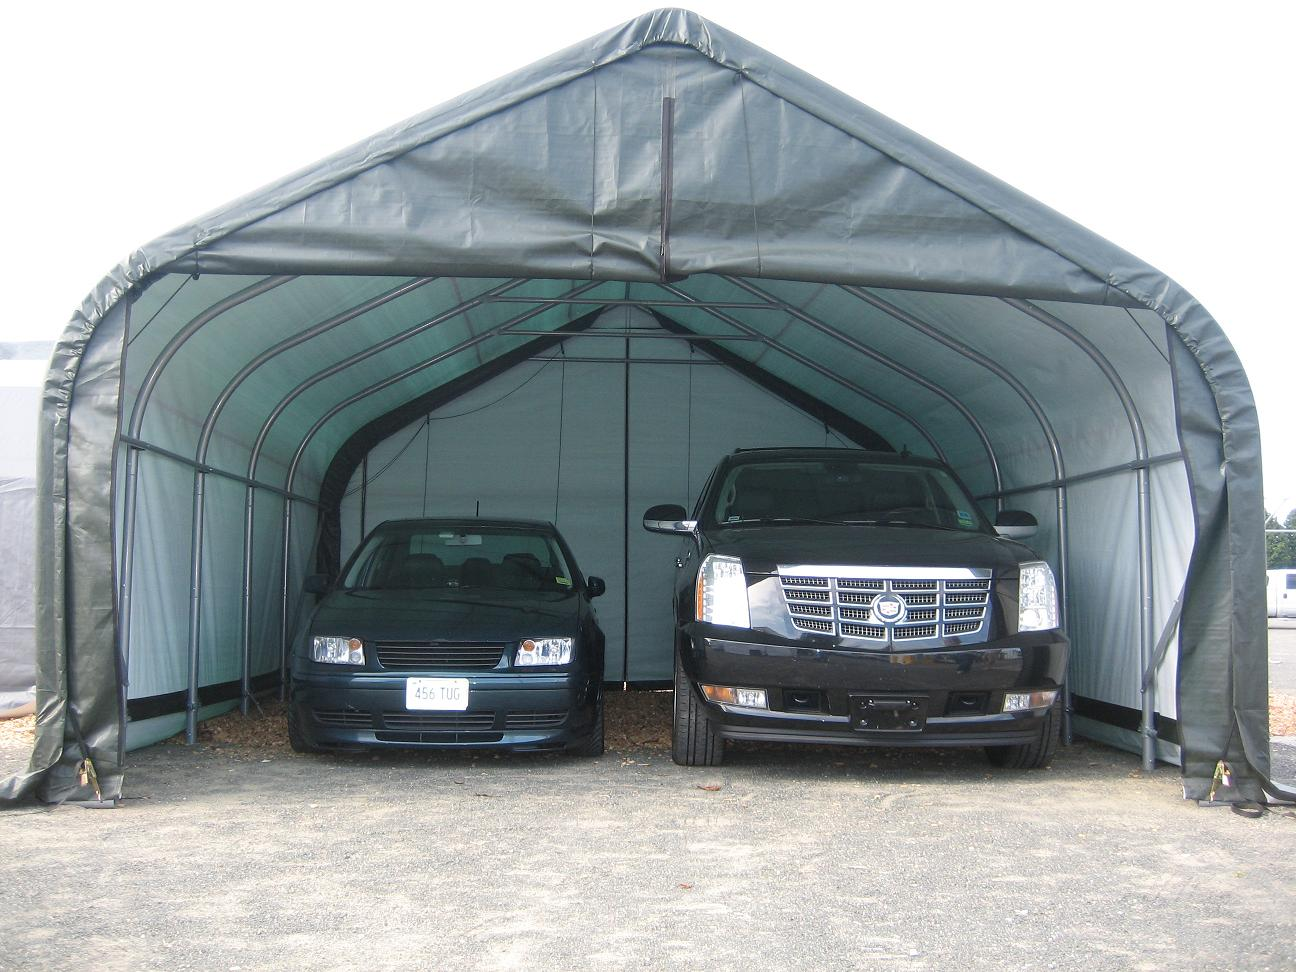 portable garage - garages - garage kits - cars - trucks - carport EDDARBY